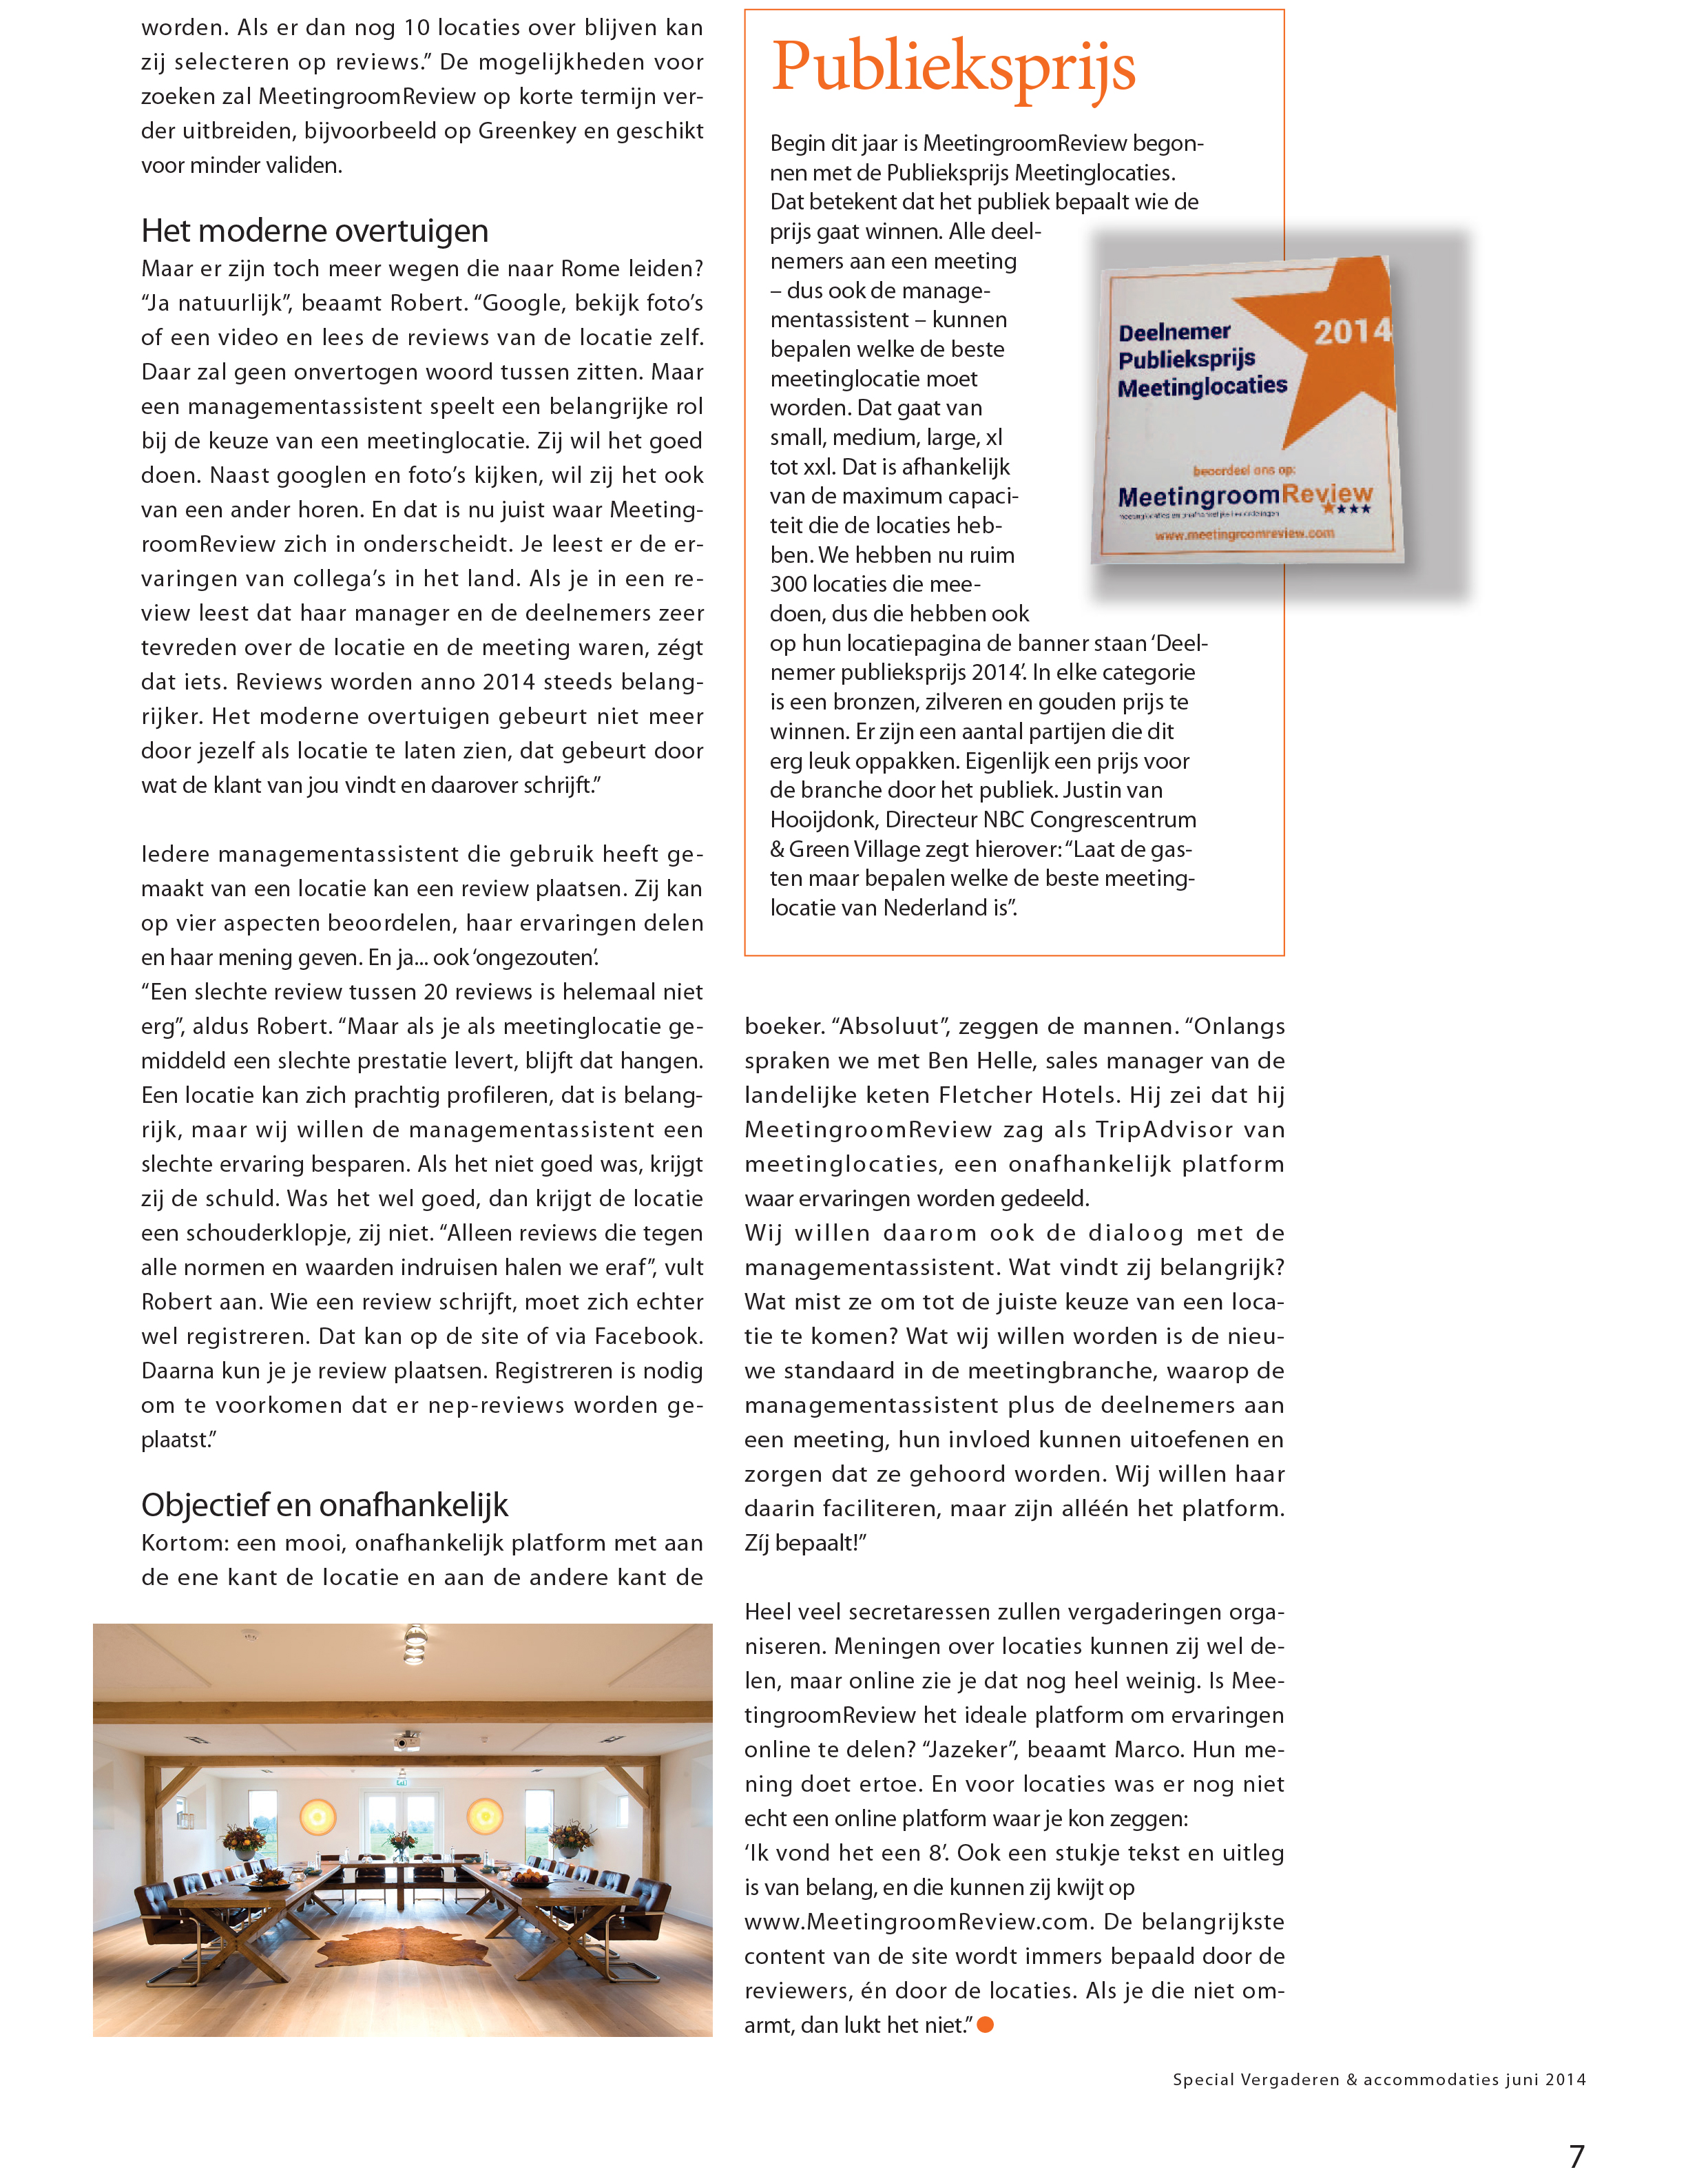 Interview MeetingReview in Management Support pagina 2